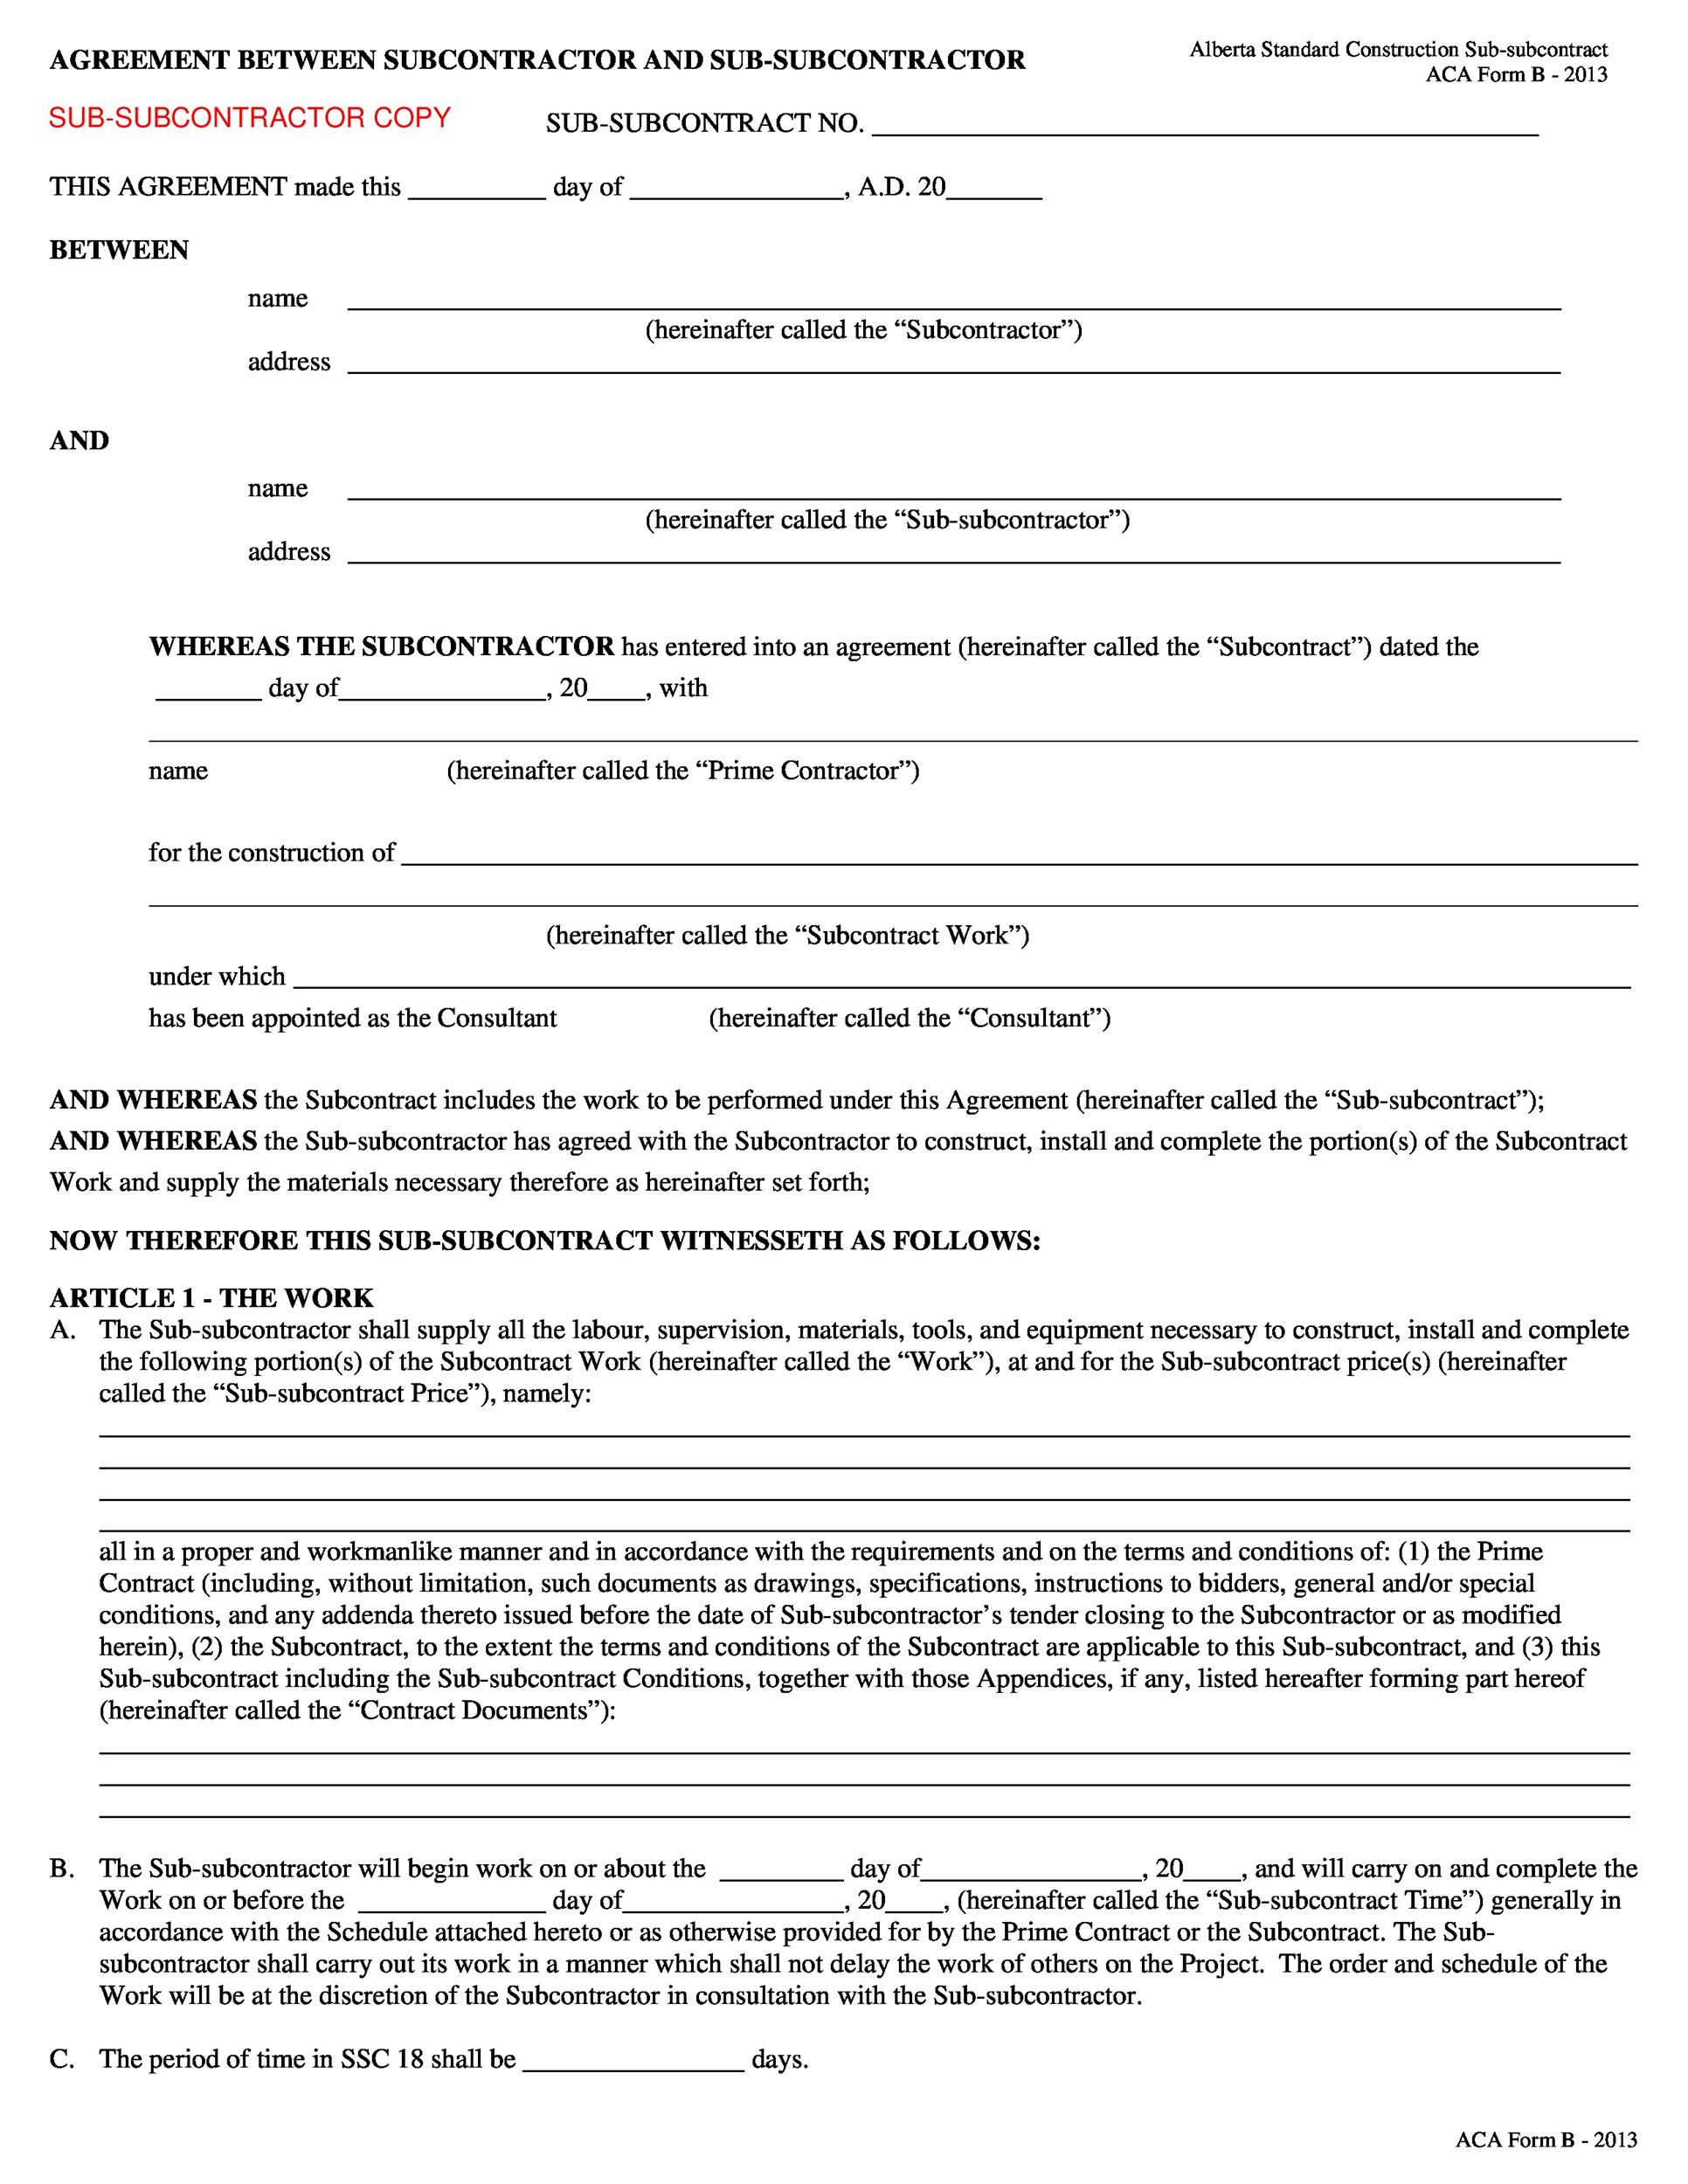 Free independent contractor agreement 51